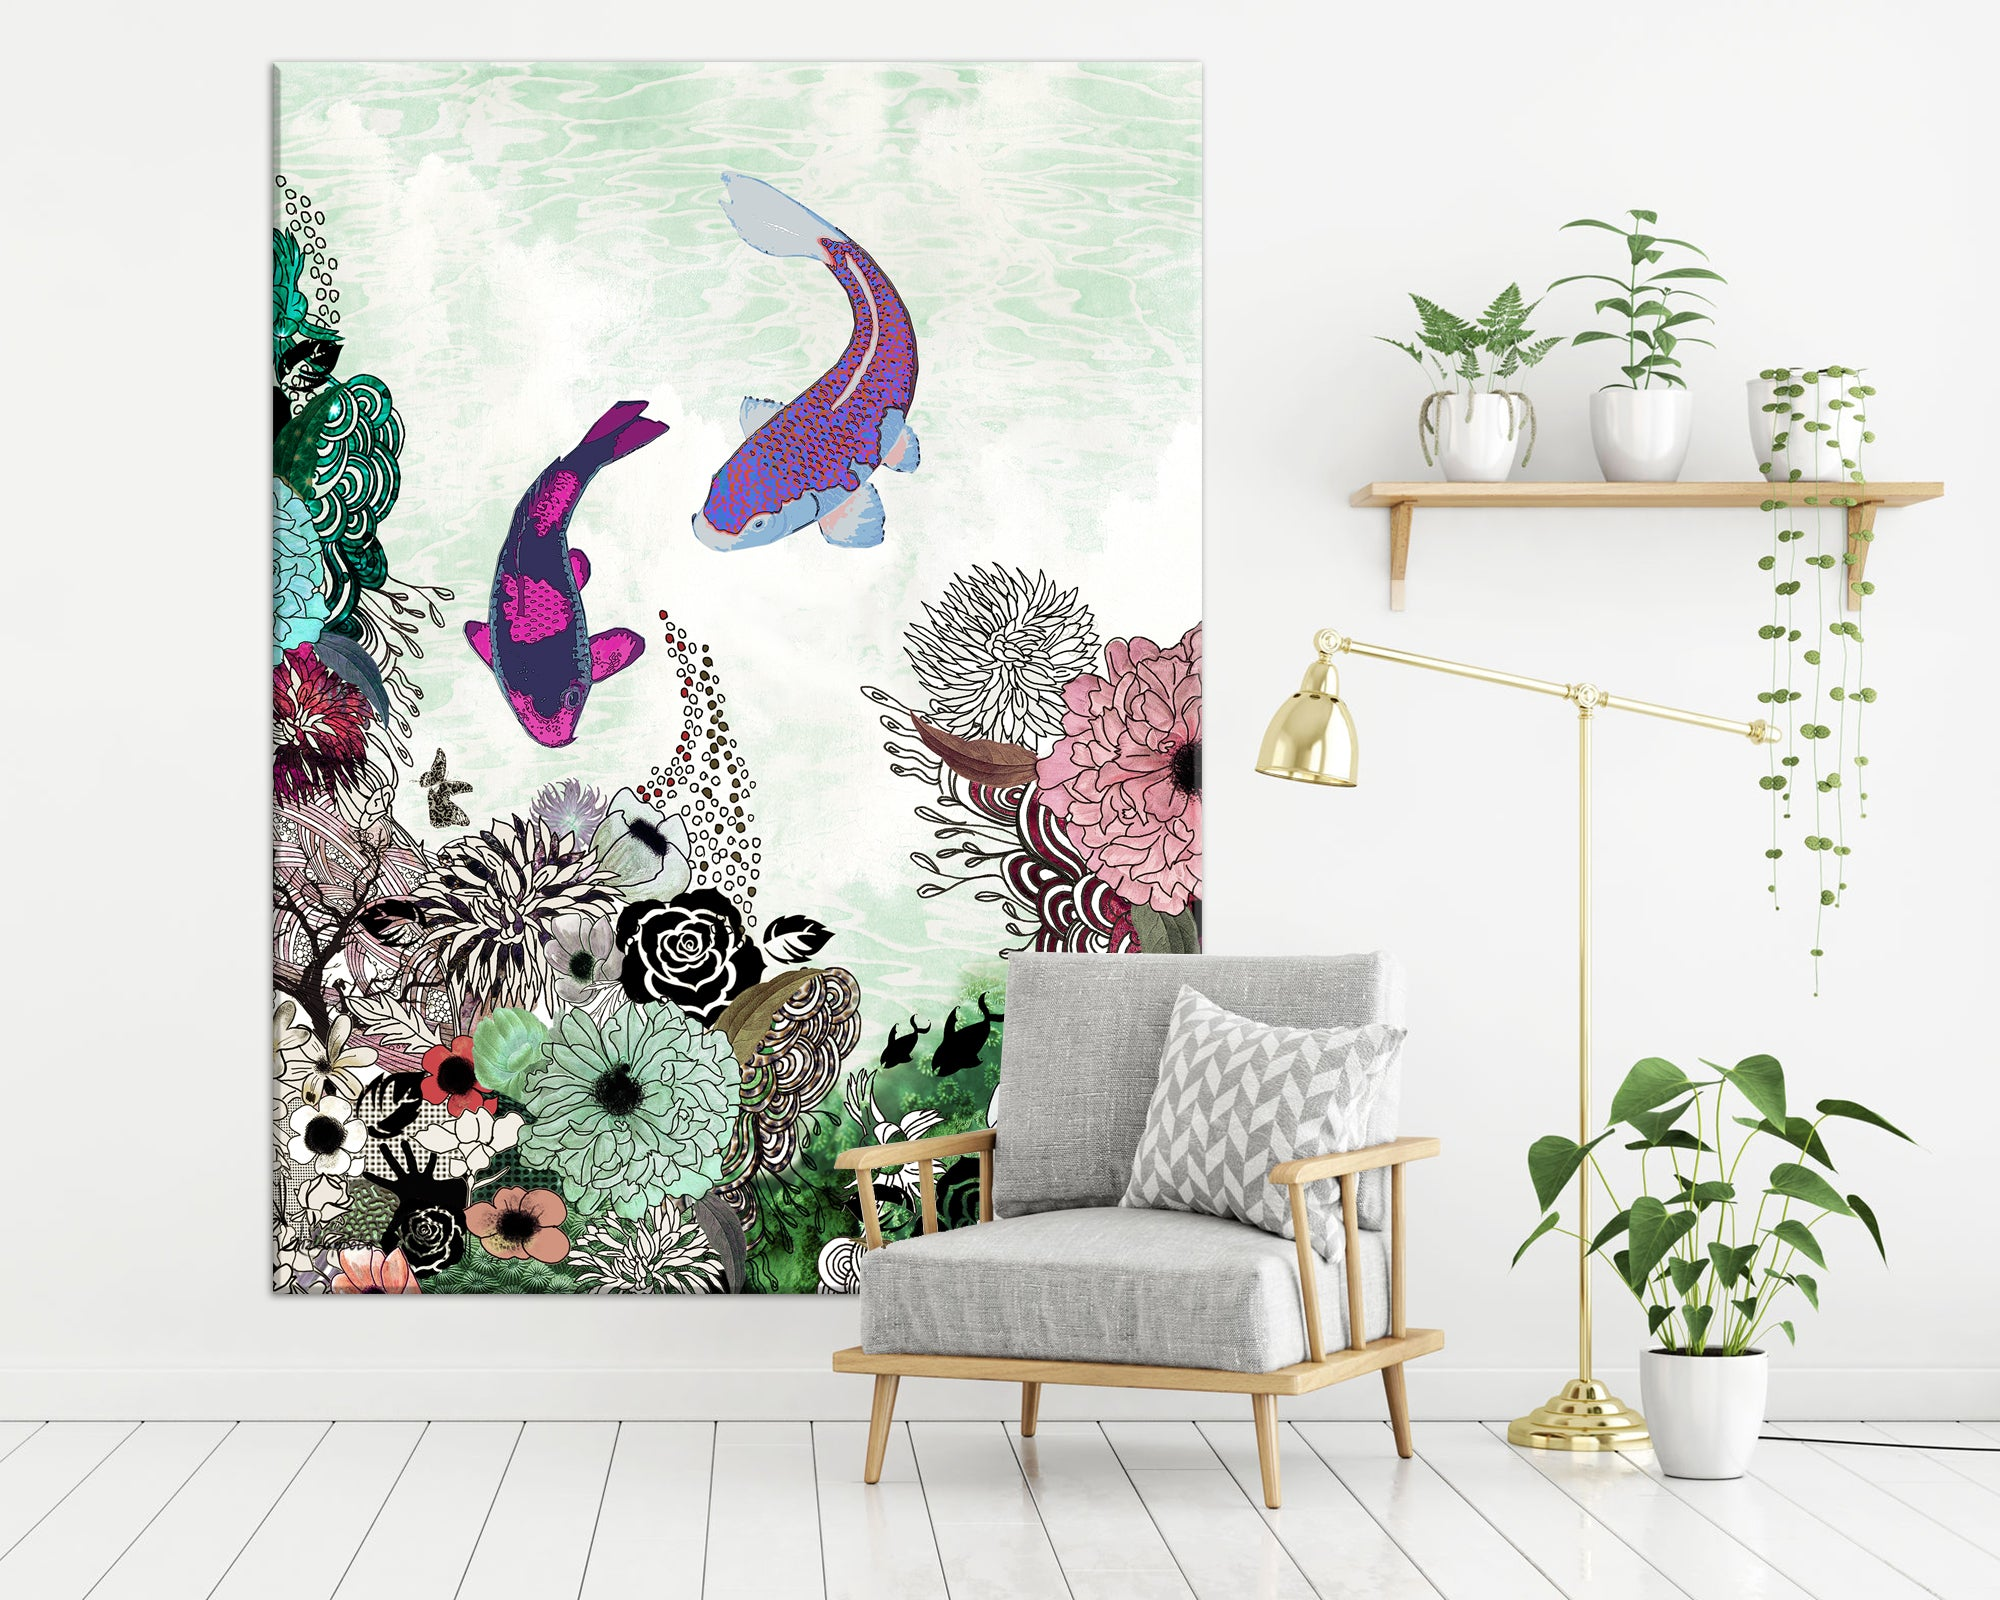 A large boho art of colorful koi fish painting, hanged on a white space